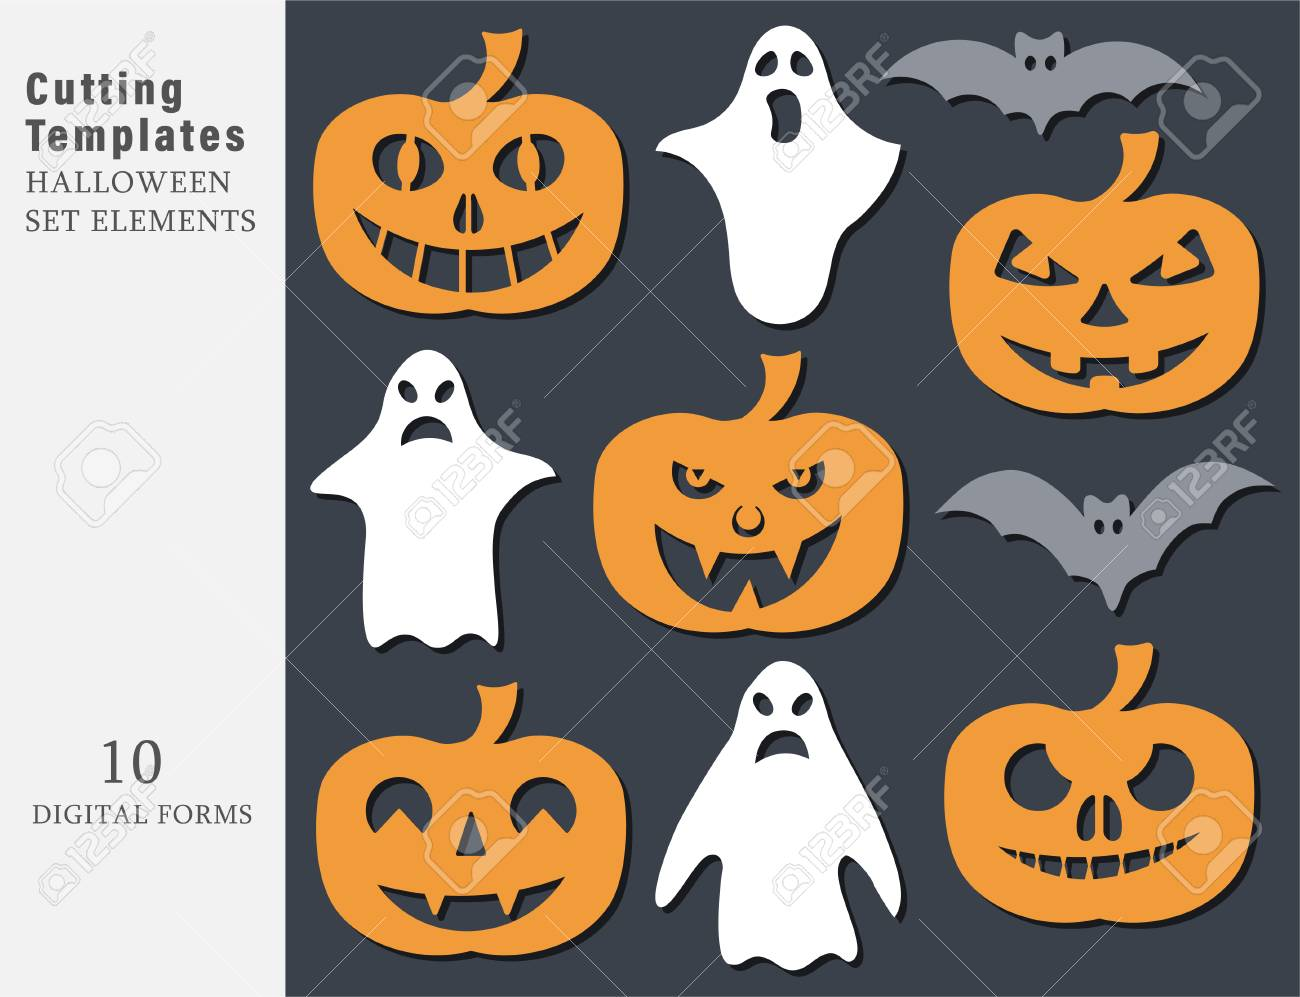 Garland Halloween. The laser cutting. Festive decoration for walls and Windows. Vector illustration. - 108678218